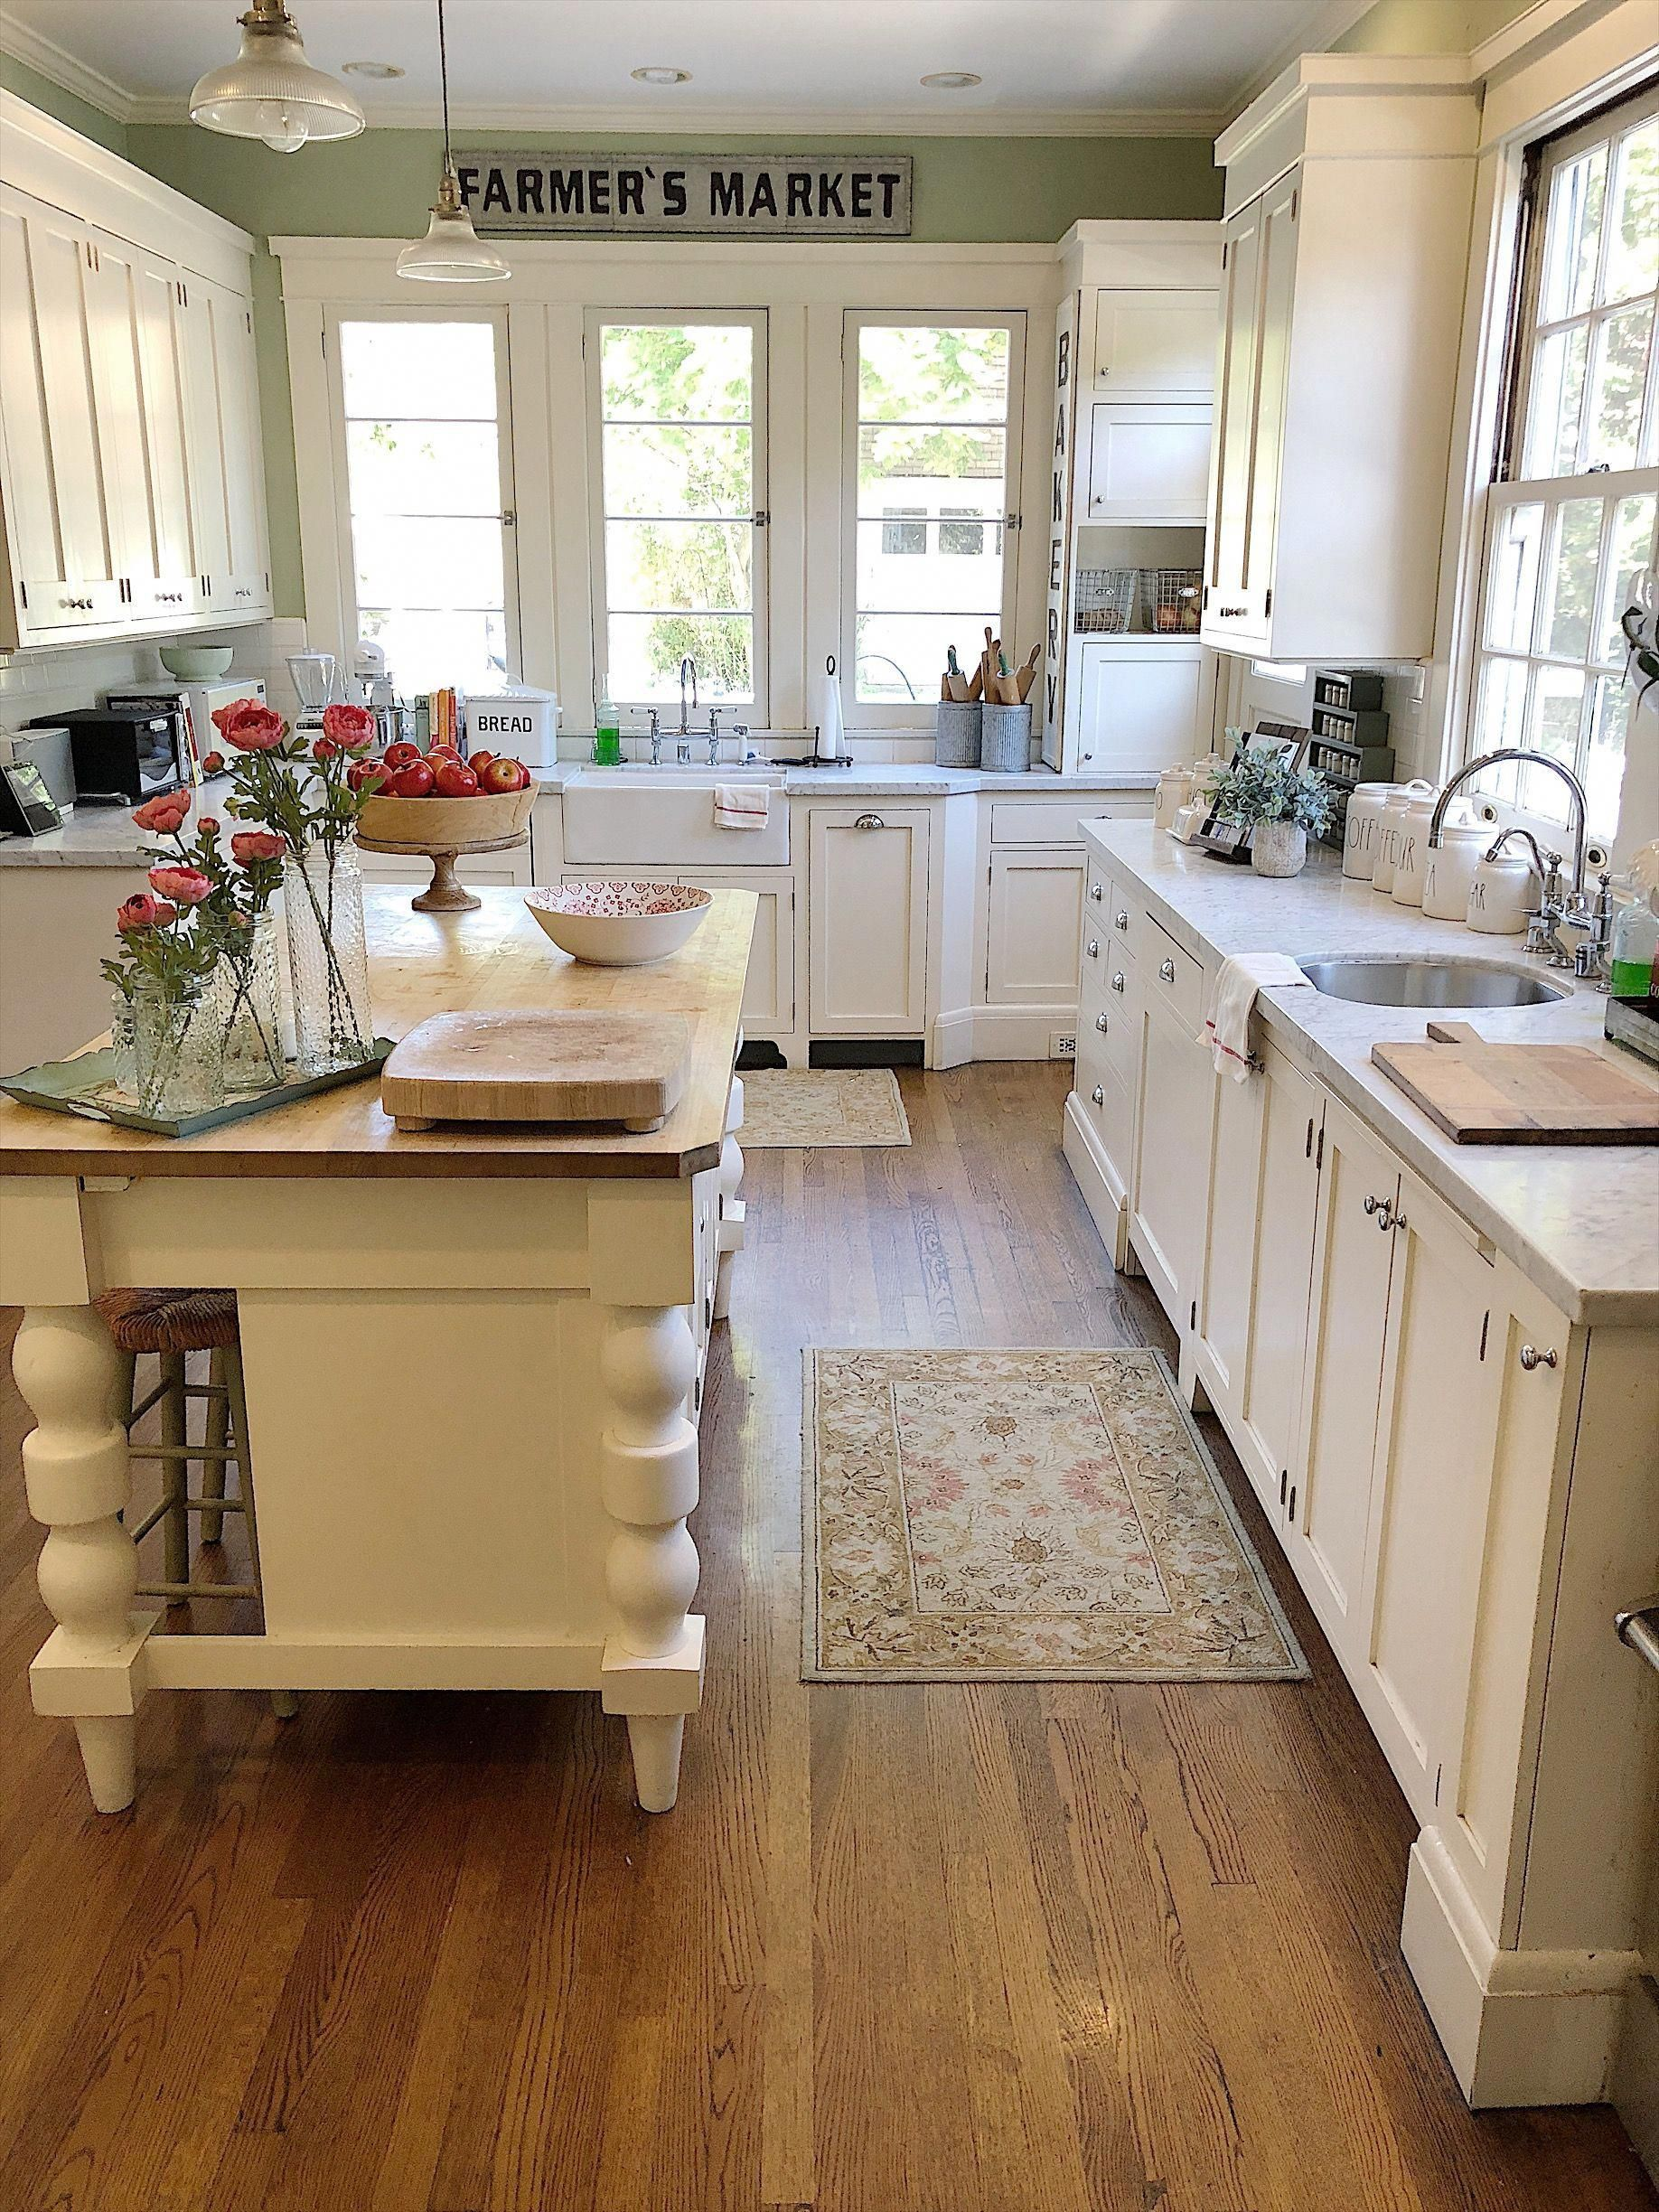 My 100 Year Old Home Sharing Diy Projects And Affordable